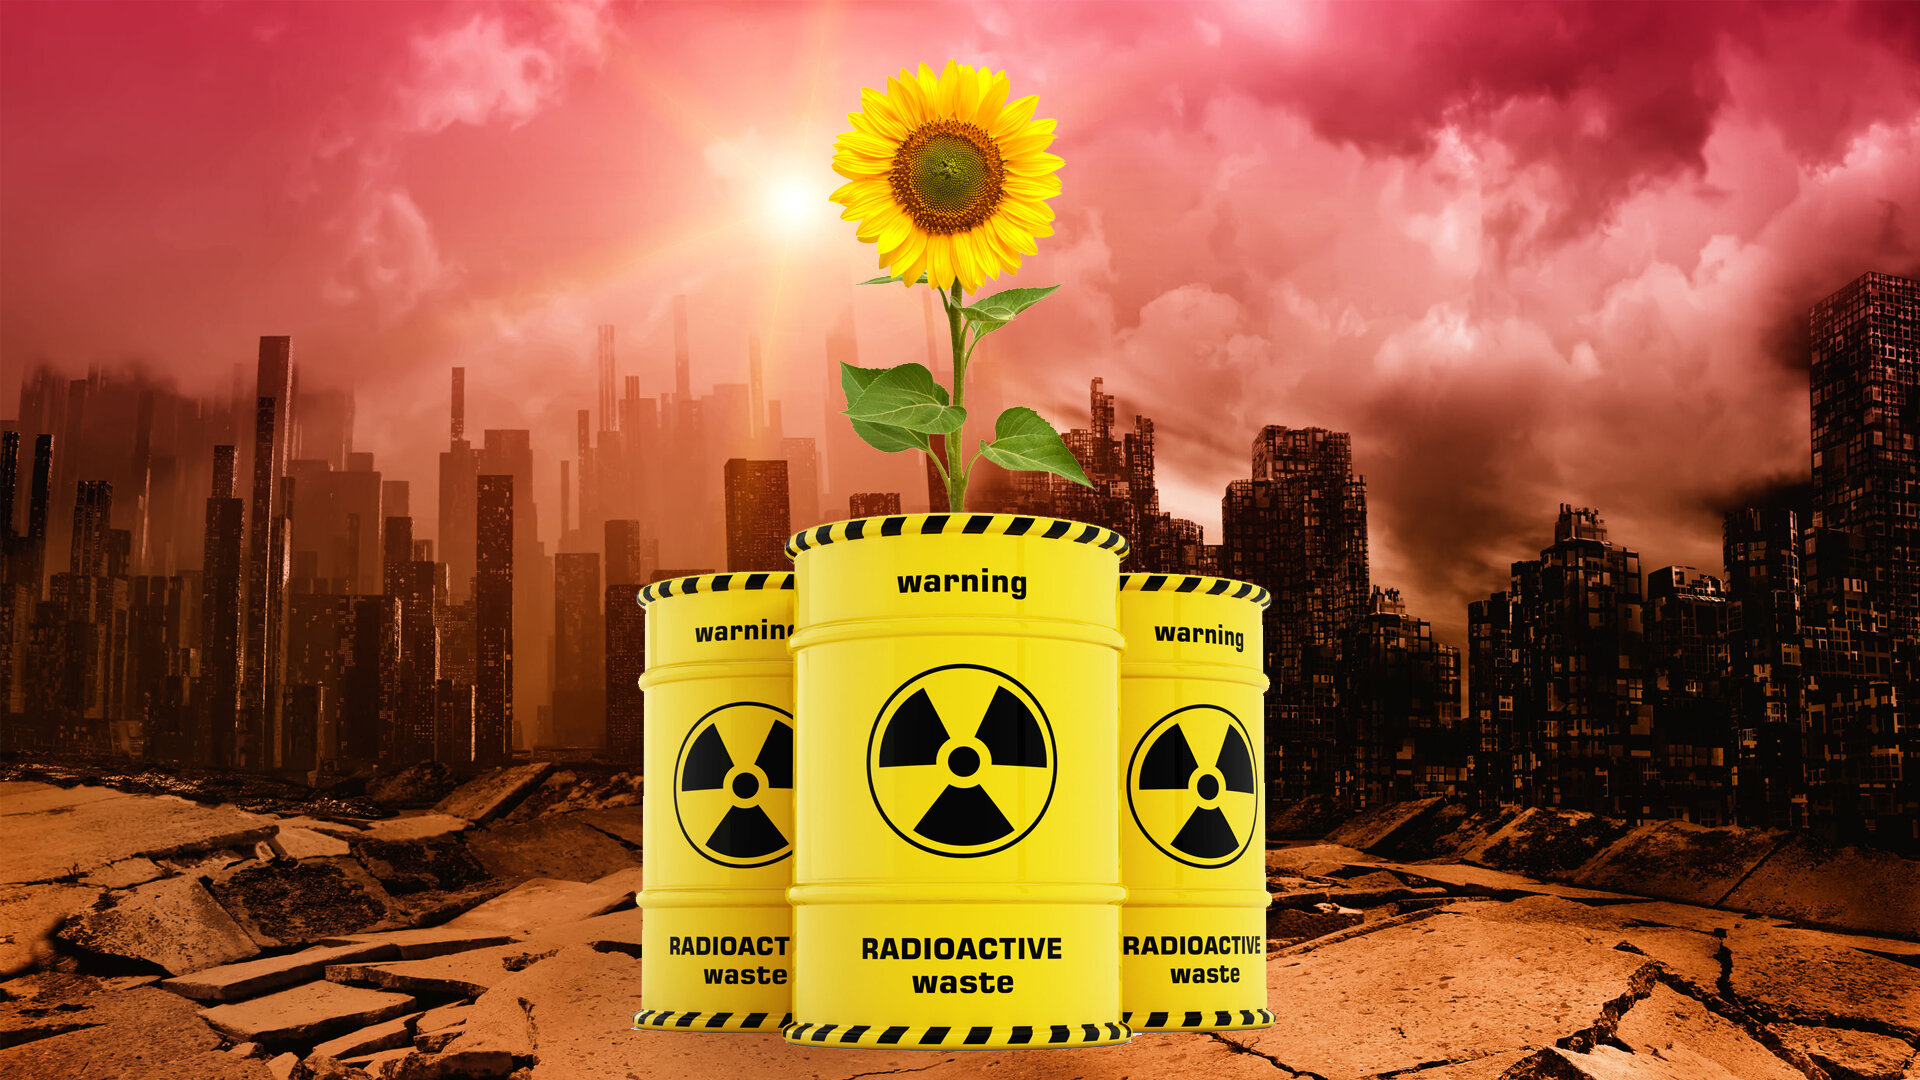 75: Sunflowers can help clean radioactivity from soil.  https://www.youtube.com/watch?v=c2pQ9guh27s